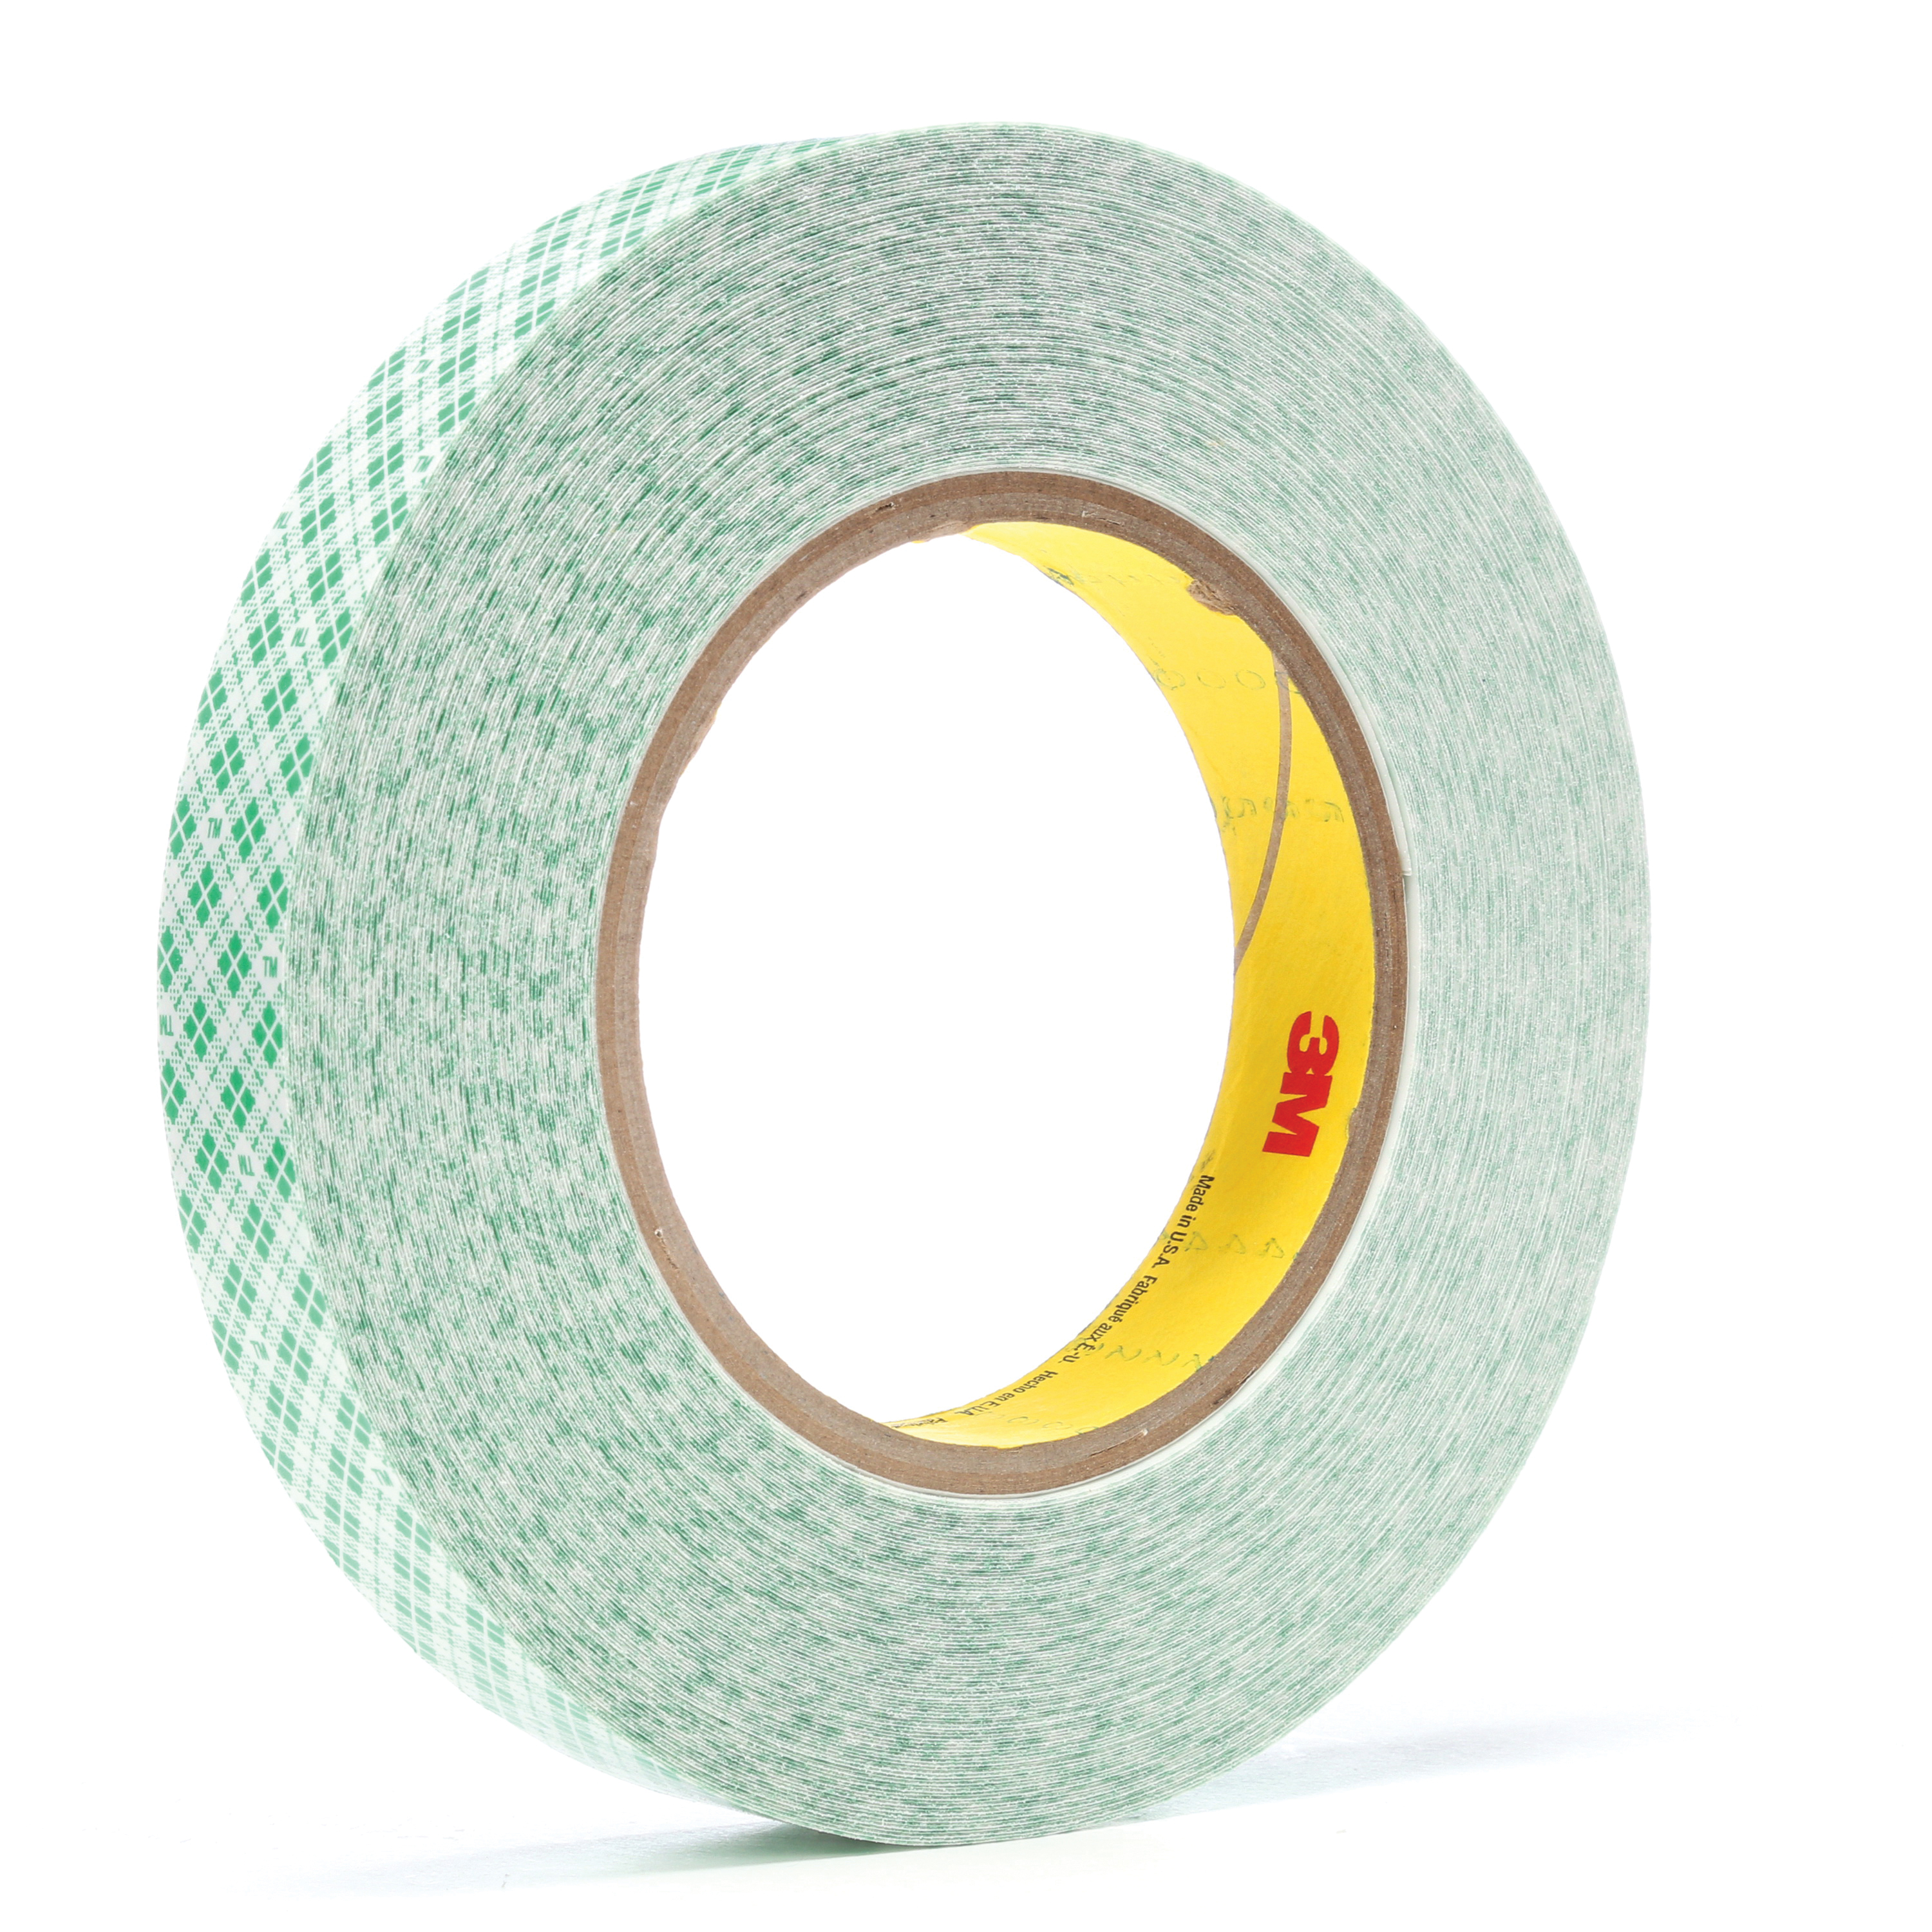 3M™ 021200-23204 Double Coated High Tack Film Tape, 36 yd L x 3/4 in W, 12.7 mil THK, 760 Synthetic Rubber Adhesive, High Density Polyethylene Backing, White